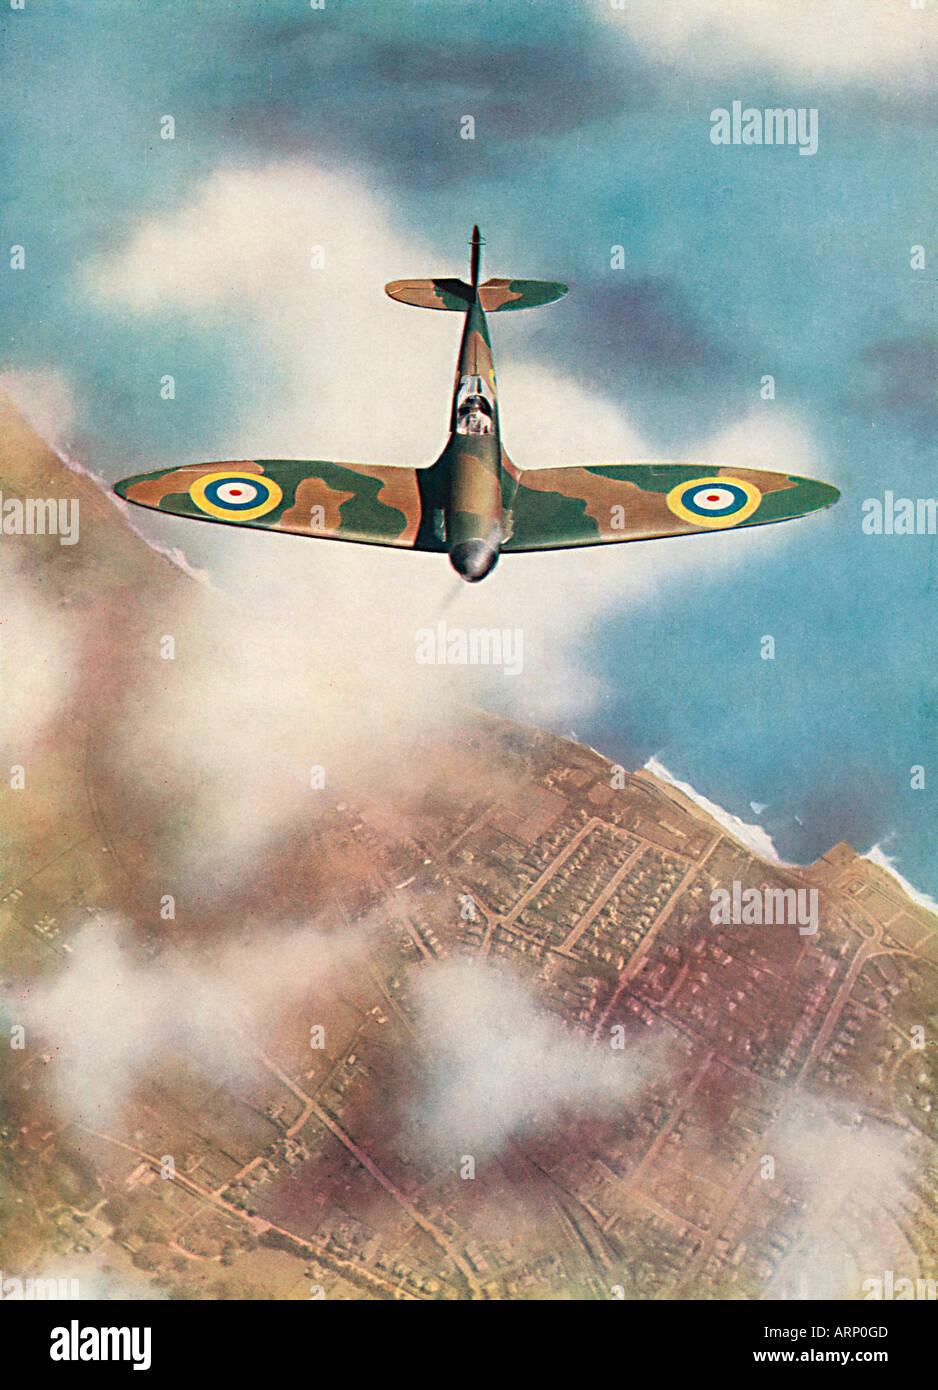 Spitfire 1939 photo of the iconic English fighter plane designed by Reginald Mitchell flying over the English coast - Stock Image